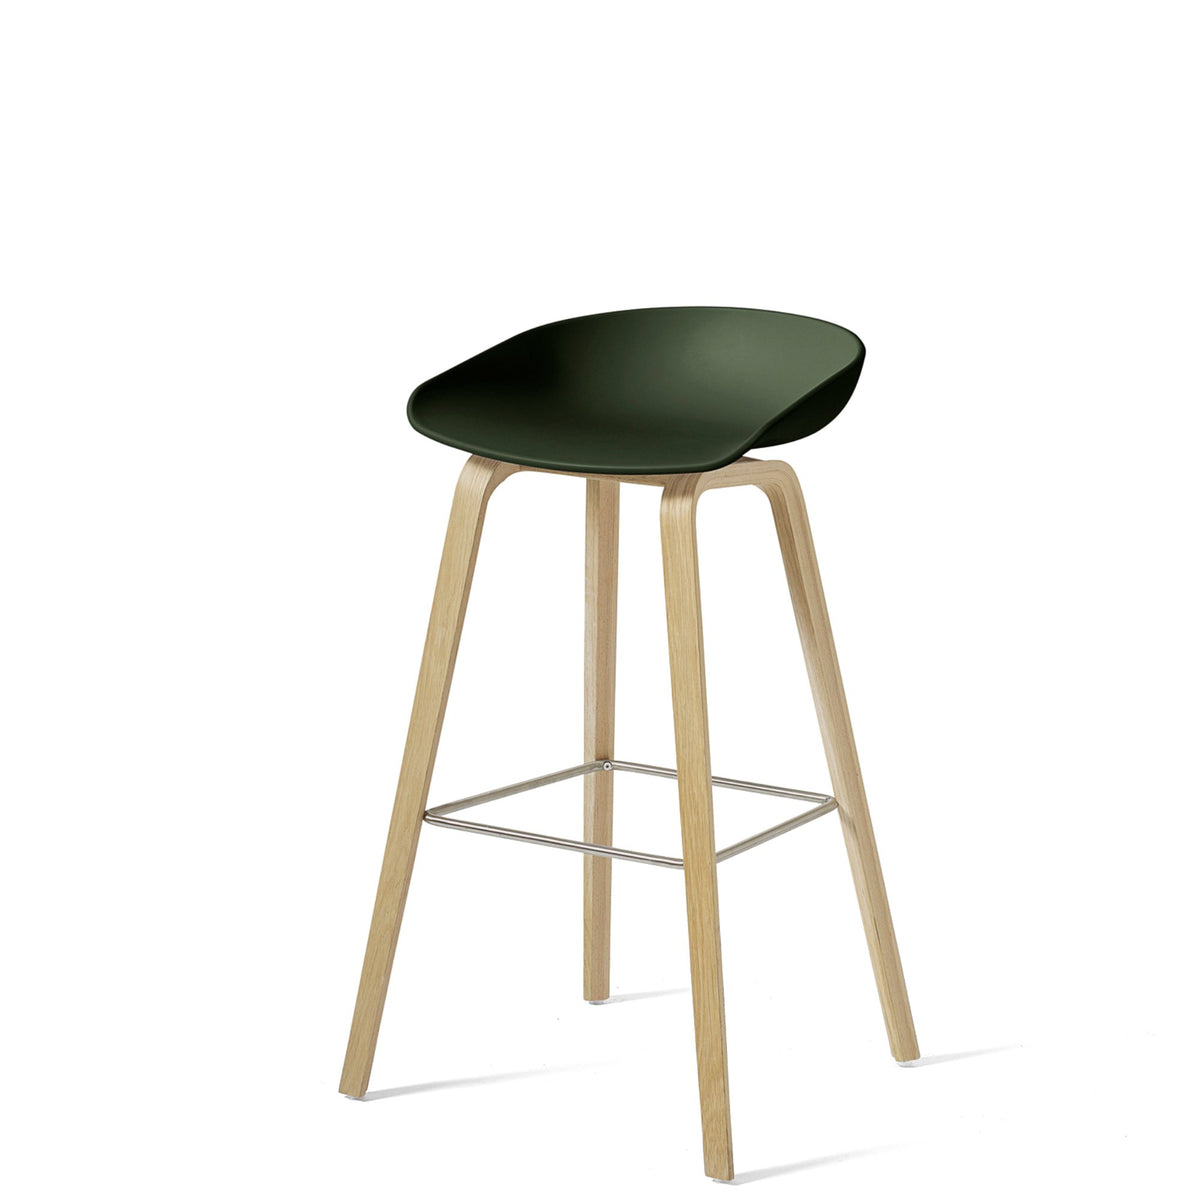 HAY About A Stool AAS32 850mm Green Matt Lacquered Oak Base